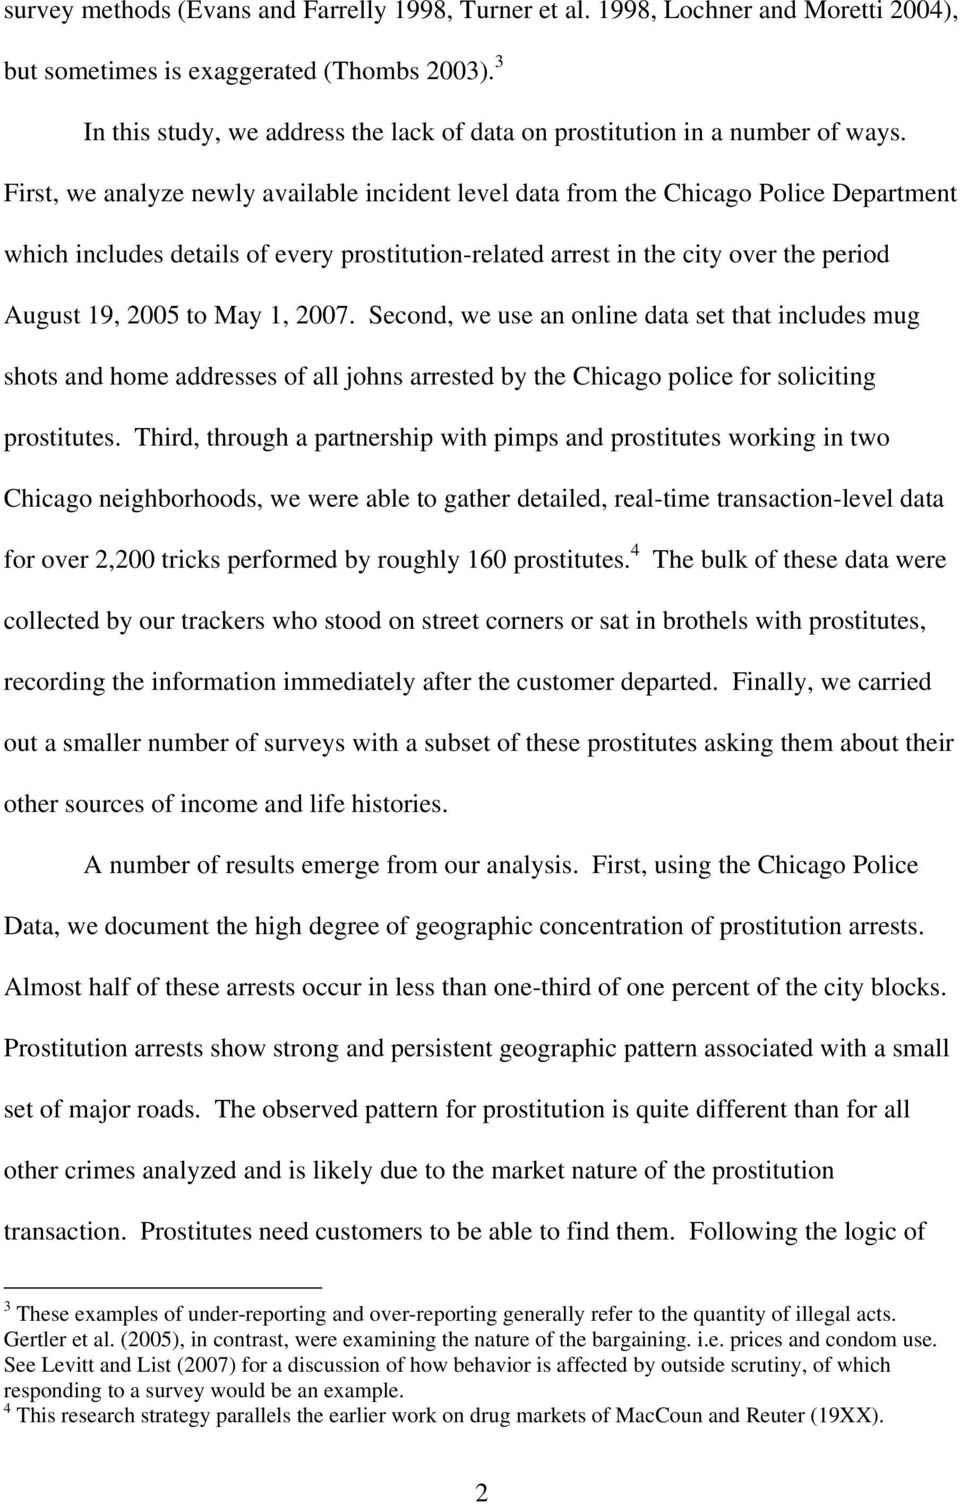 First, we analyze newly available incident level data from the Chicago Police Department which includes details of every prostitution-related arrest in the city over the period August 19, 2005 to May